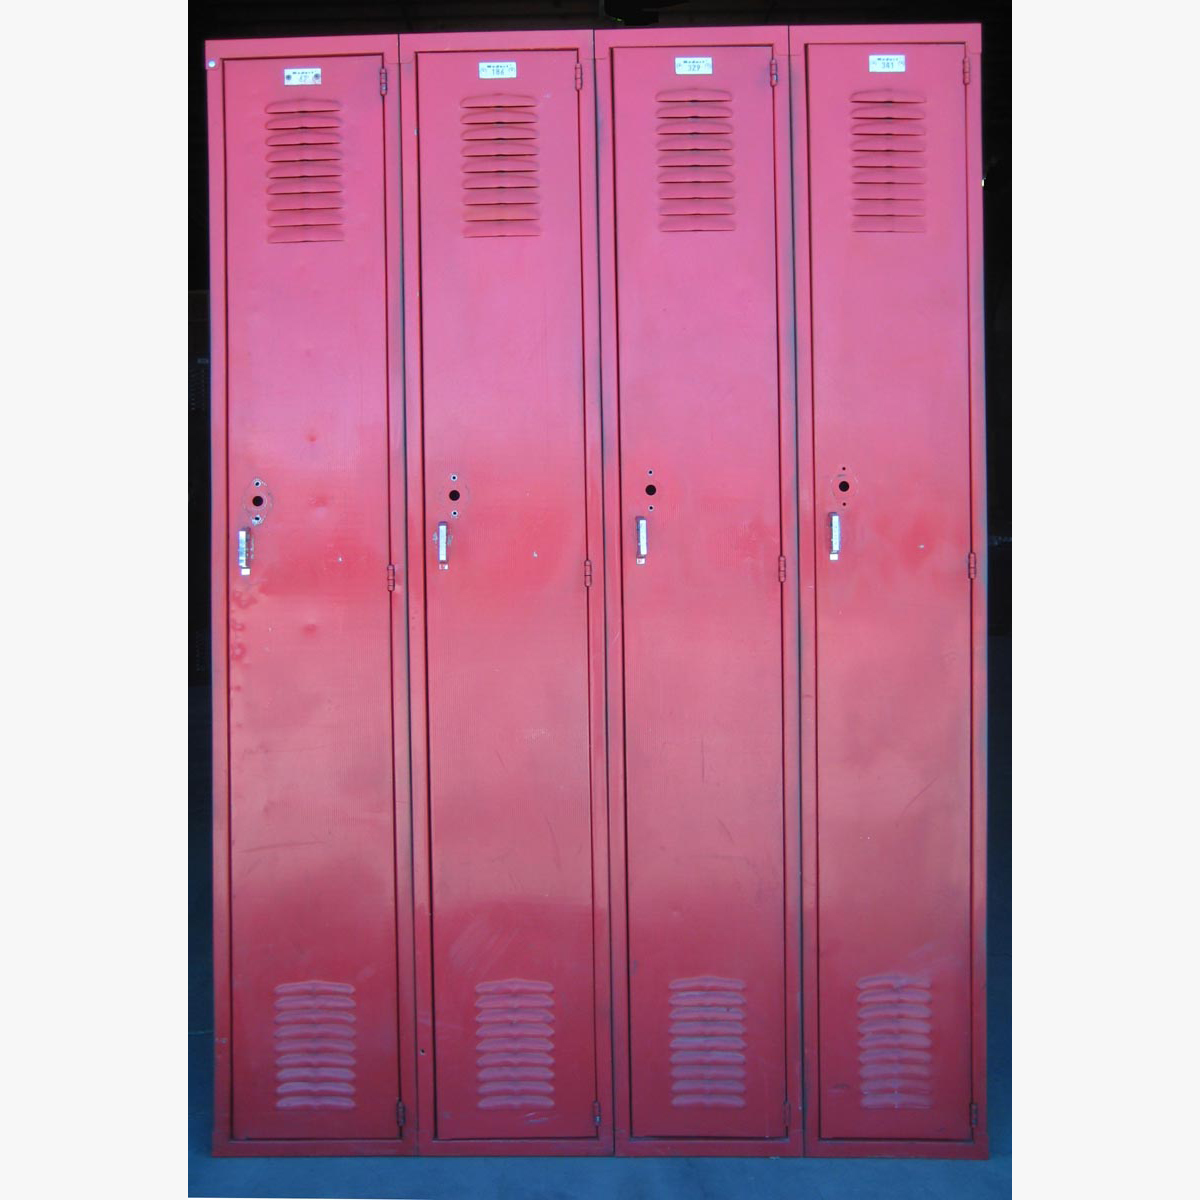 Brilliant Penco Lockers for Best Locker Choice: Penco Lockers | Colored Lockers | Locker Dimensions Gym